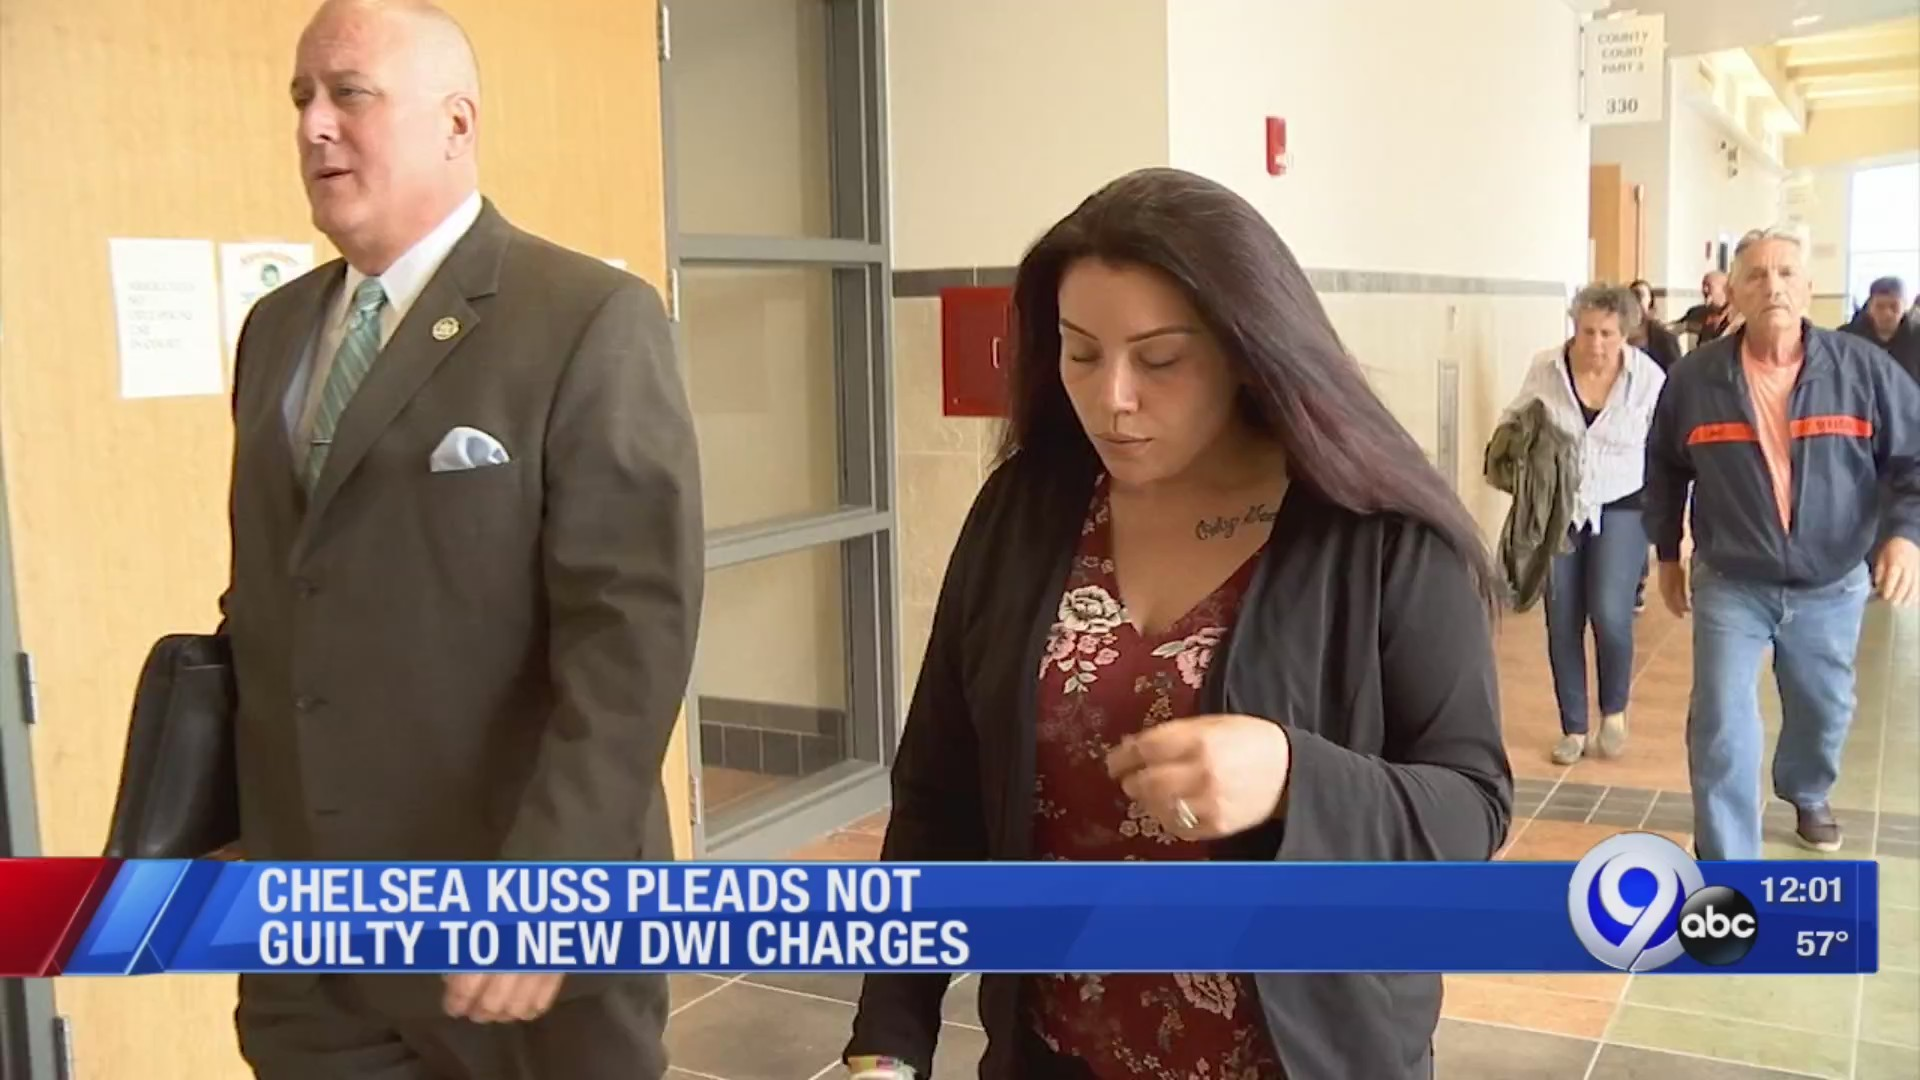 Chelsea_Kuss_pleads_not_guilty_to_new_DW_0_20190613160513